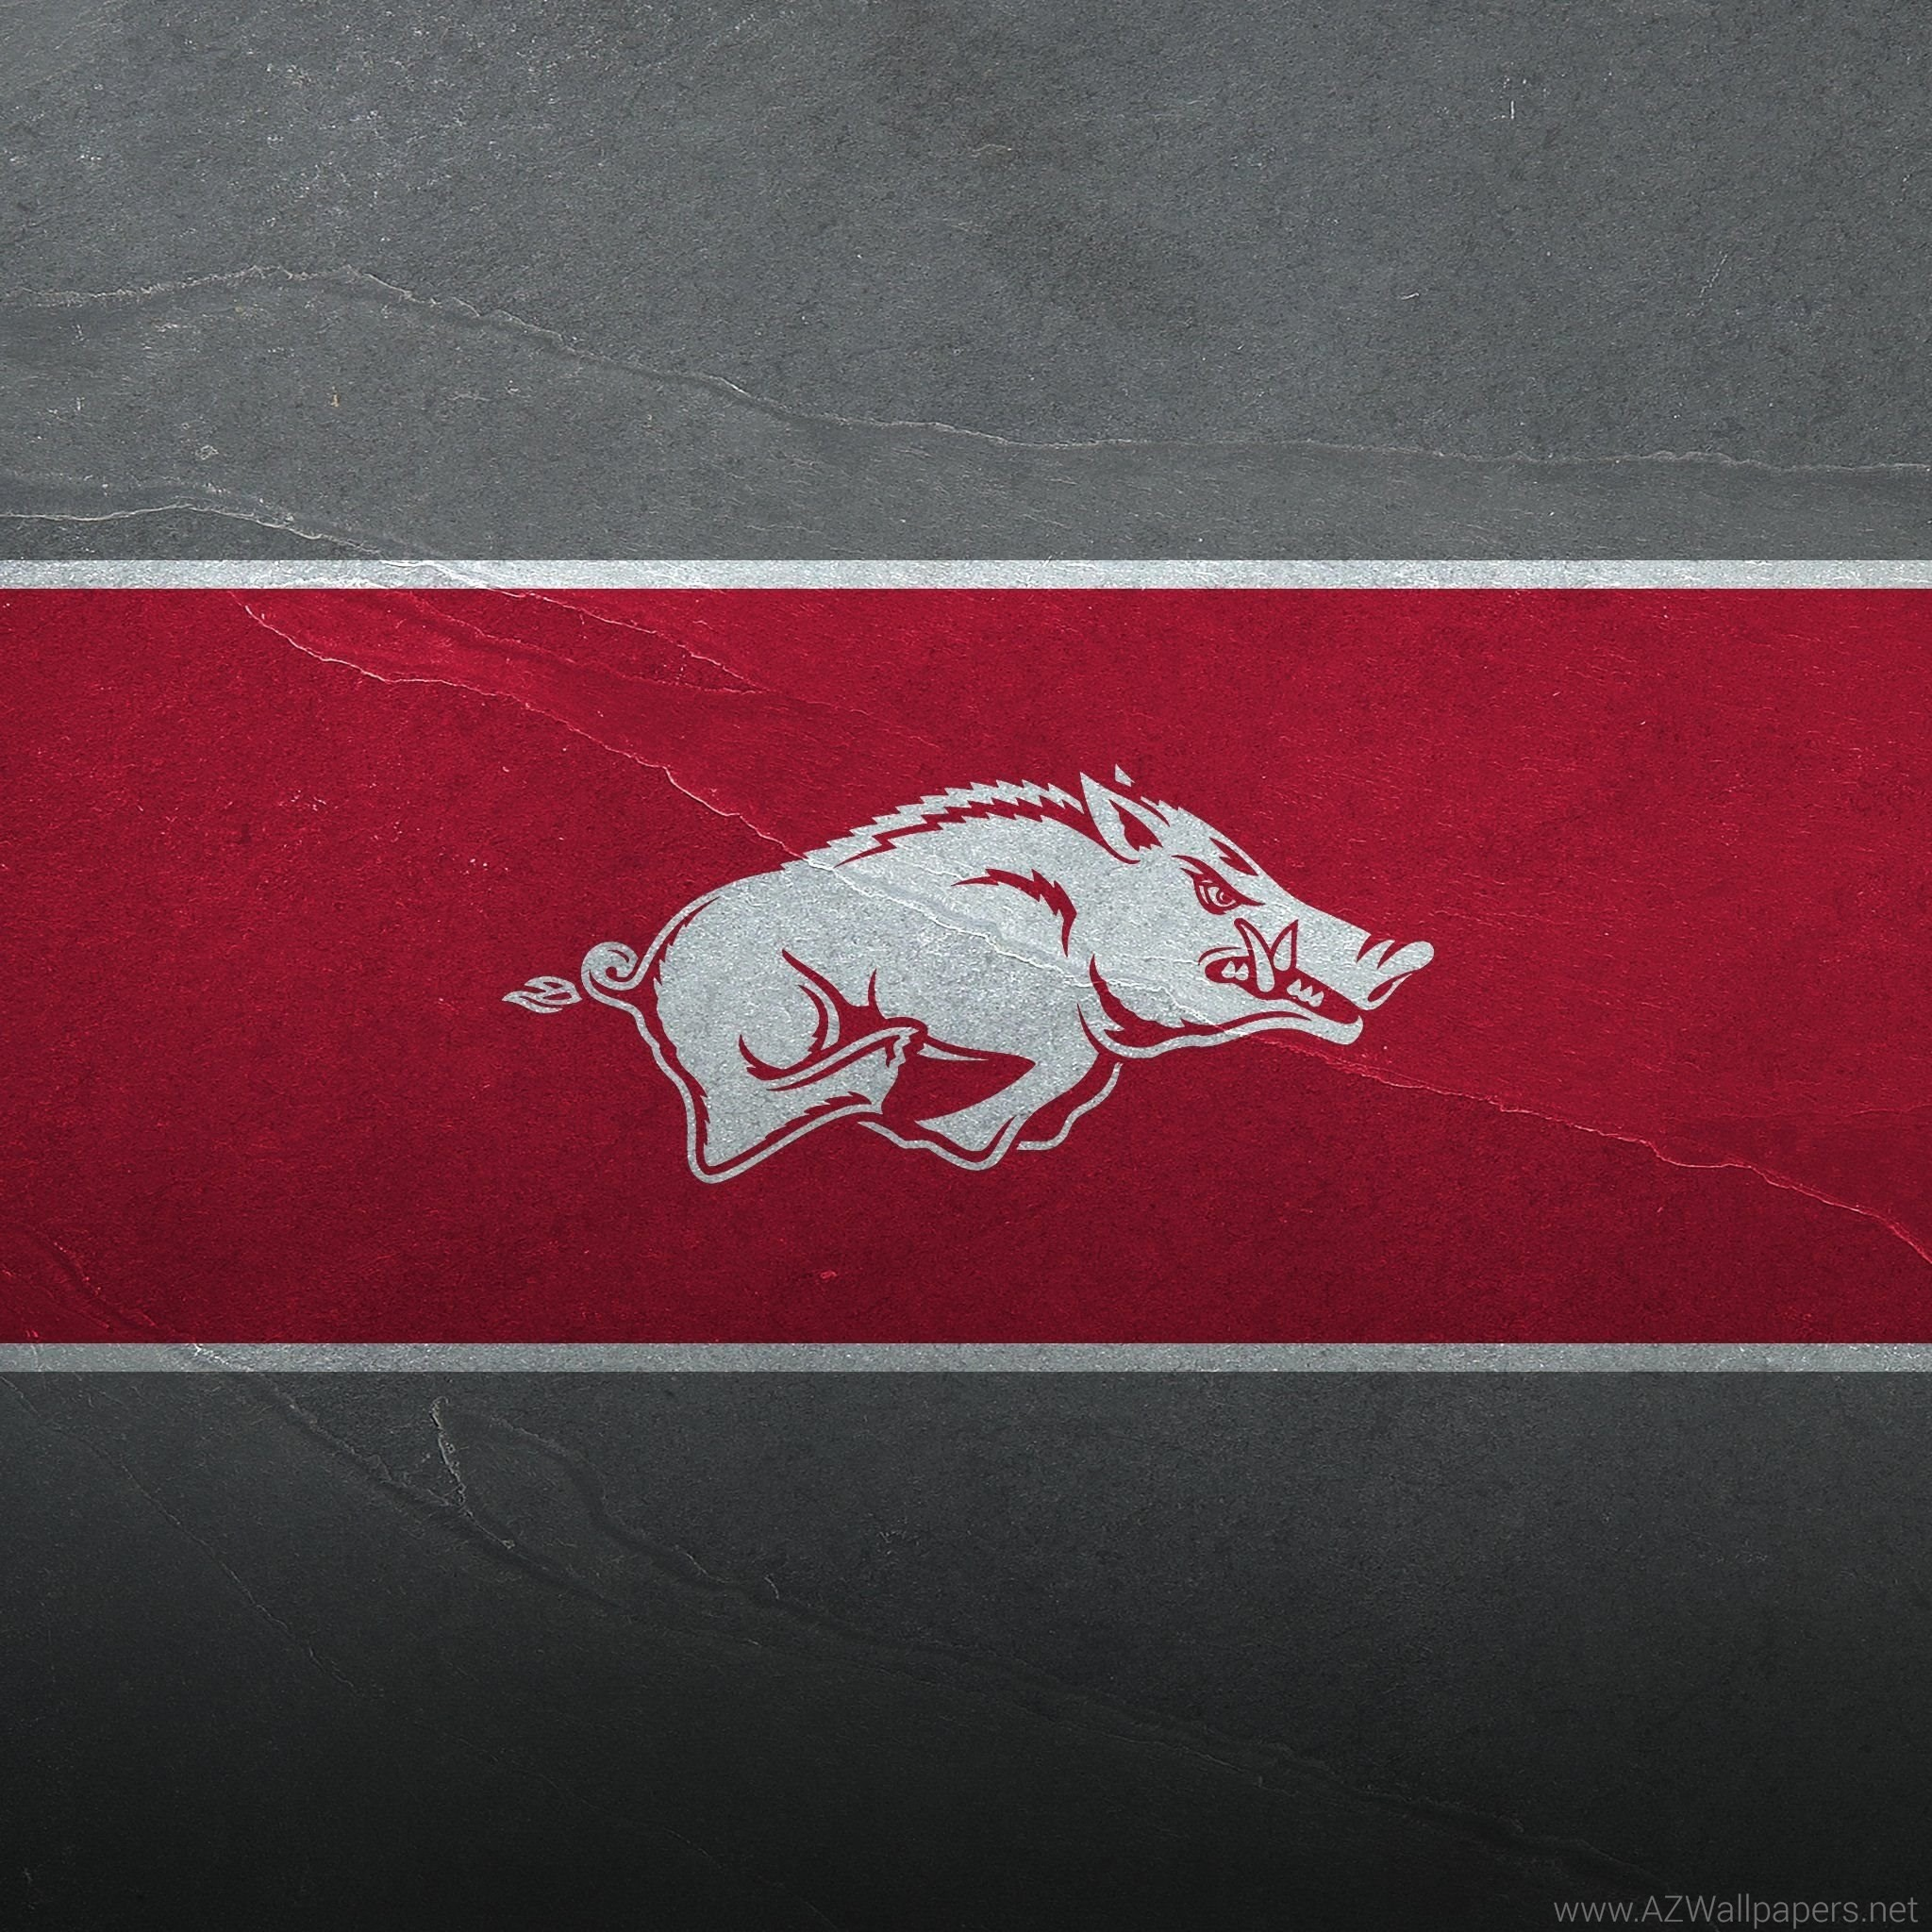 2048x2048 ARKANSAS RAZORBACKS College Football Wallpapers